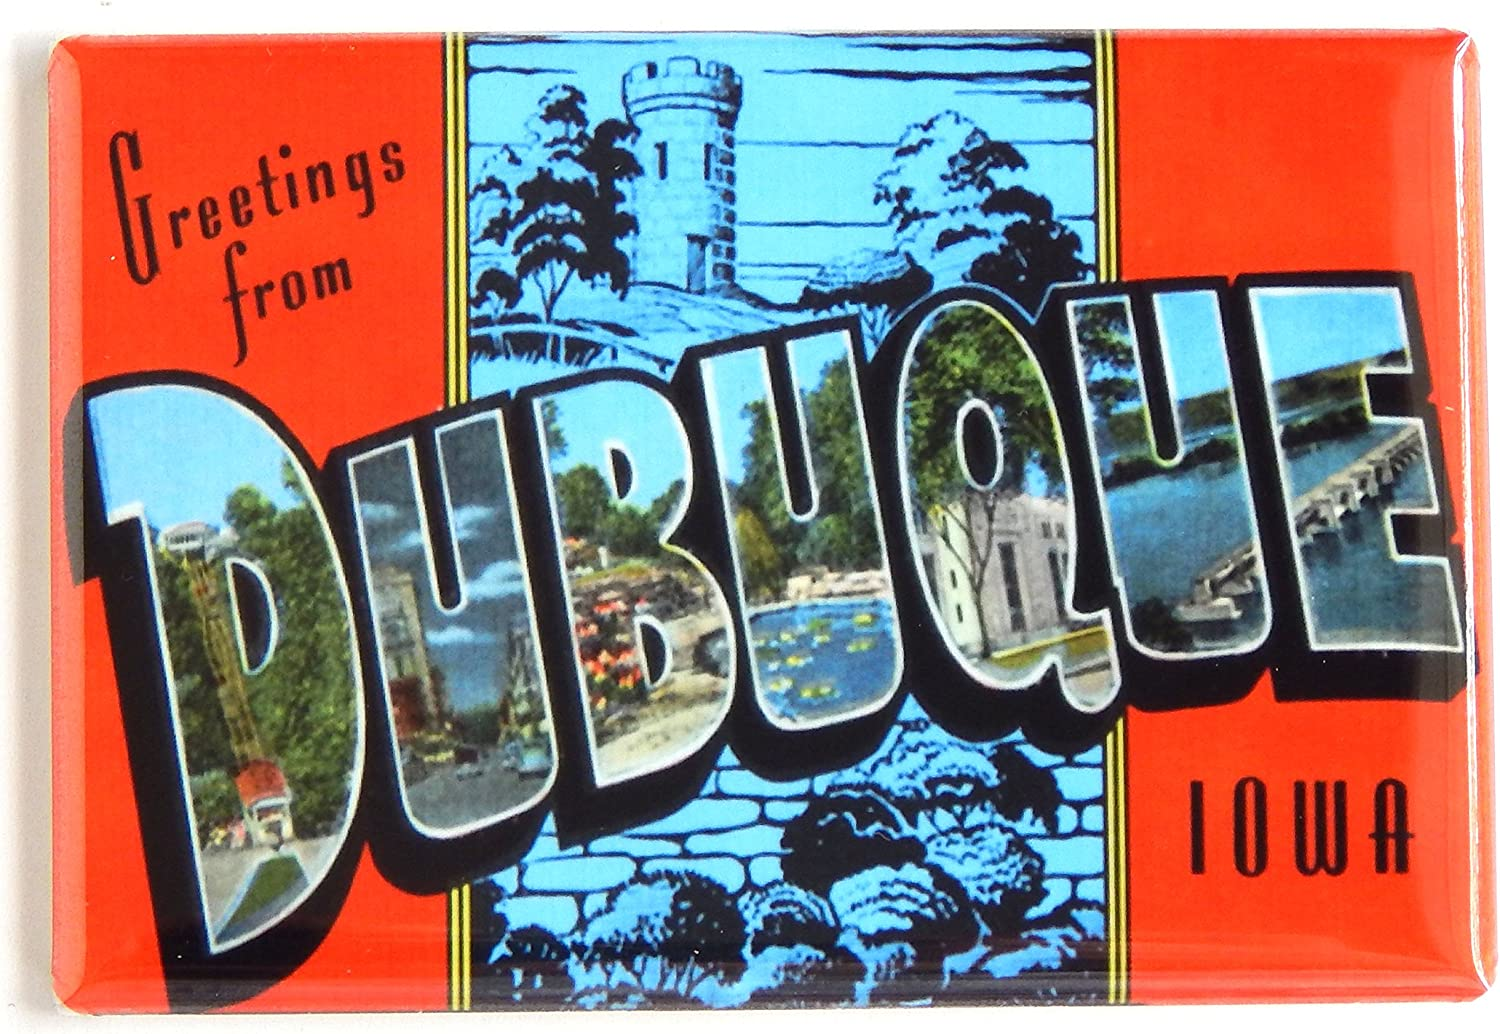 Greetings from Dubuque Iowa Fridge Magnet (2 x 3 inches)